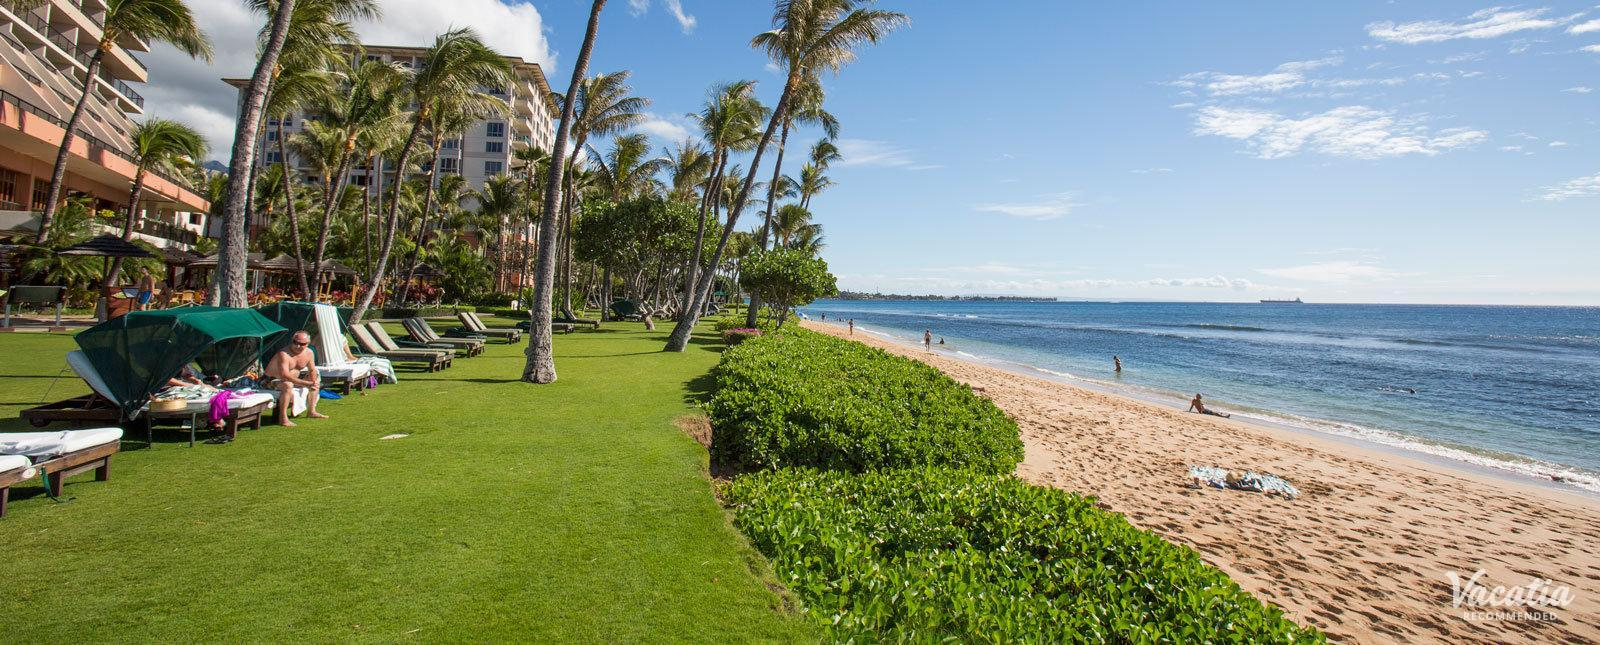 Marriott's Maui Ocean Club Beachfront